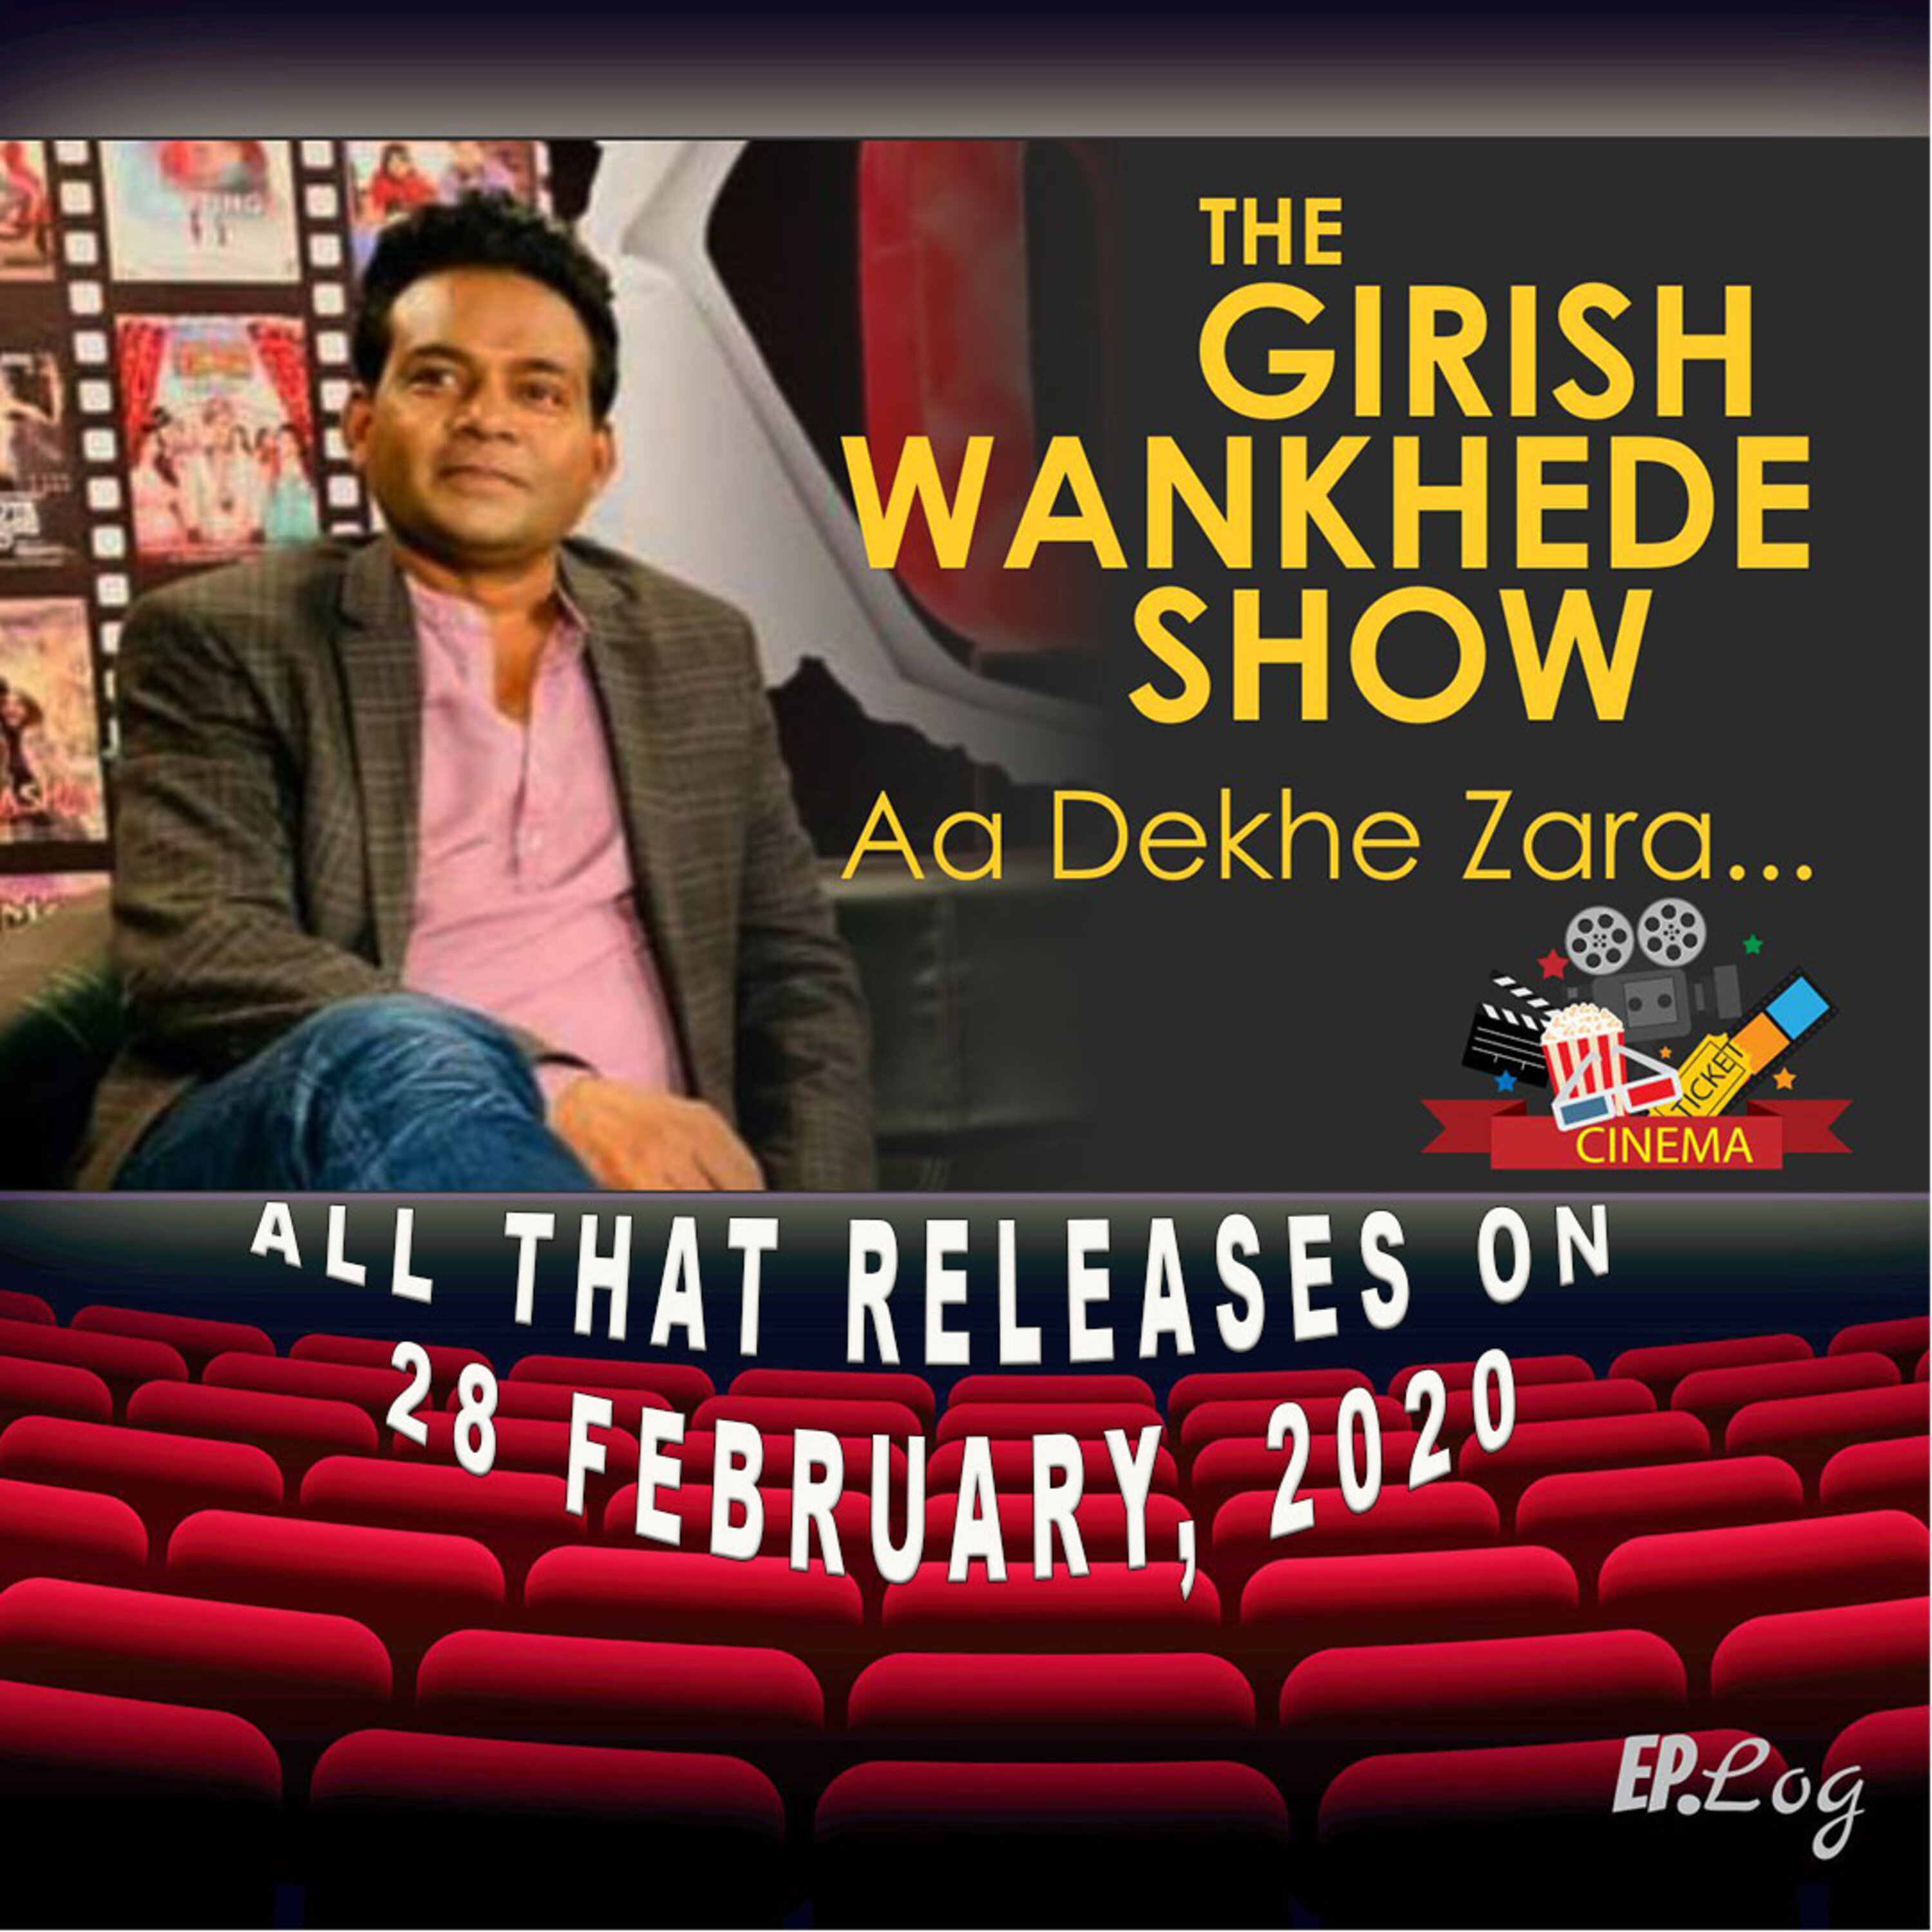 All That Releases on 28th February 2020 & Analysis